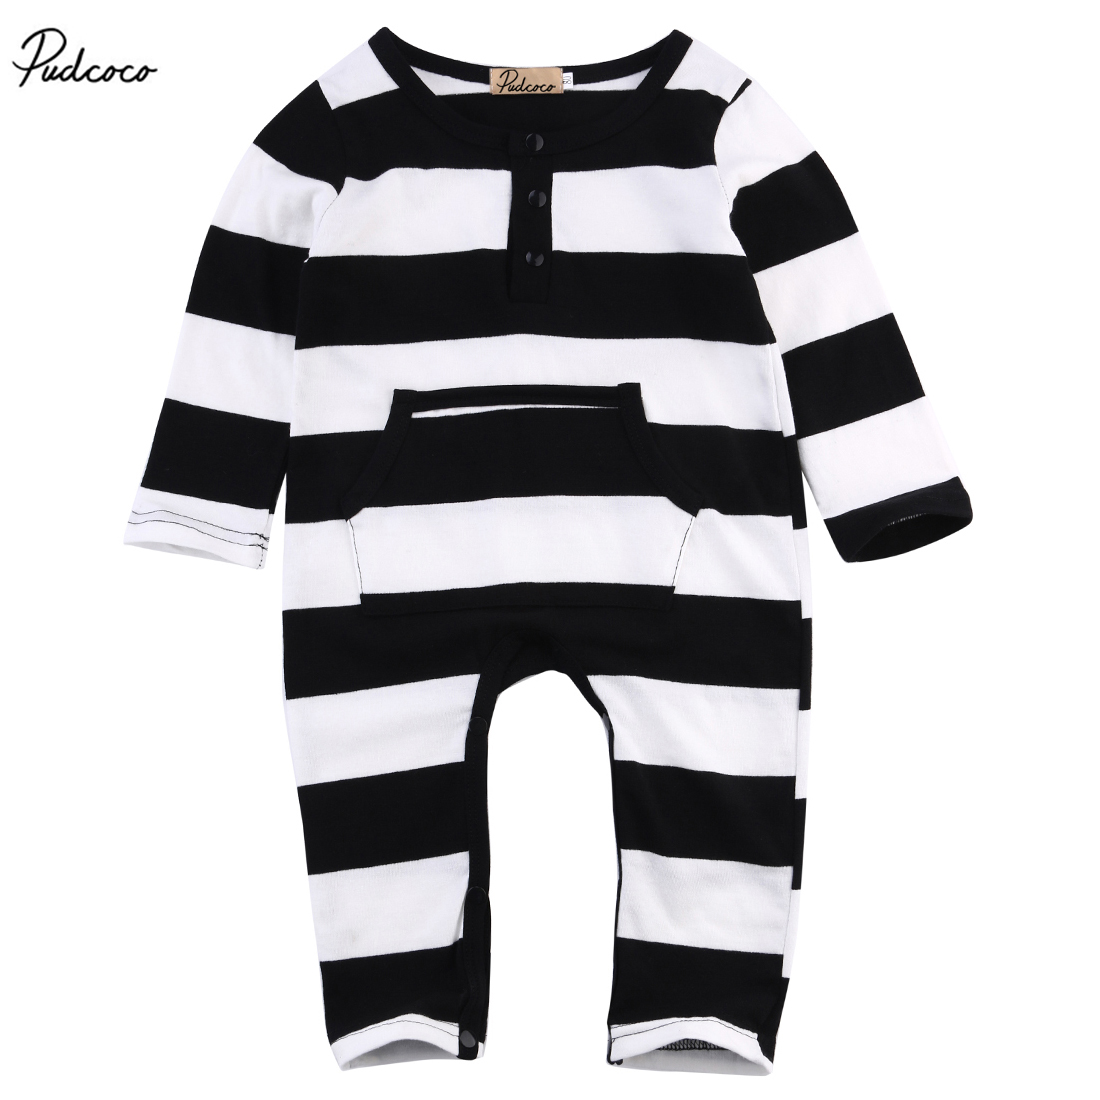 Cute Kids Baby Boys Girls Long Sleeve Striped Romper Cotton Large Pocket Jumpsuit Newborn Clothes Outfits 0-3Y newborn infant baby girls boys long sleeve clothing 3d ear romper cotton jumpsuit playsuit bunny outfits one piecer clothes kid